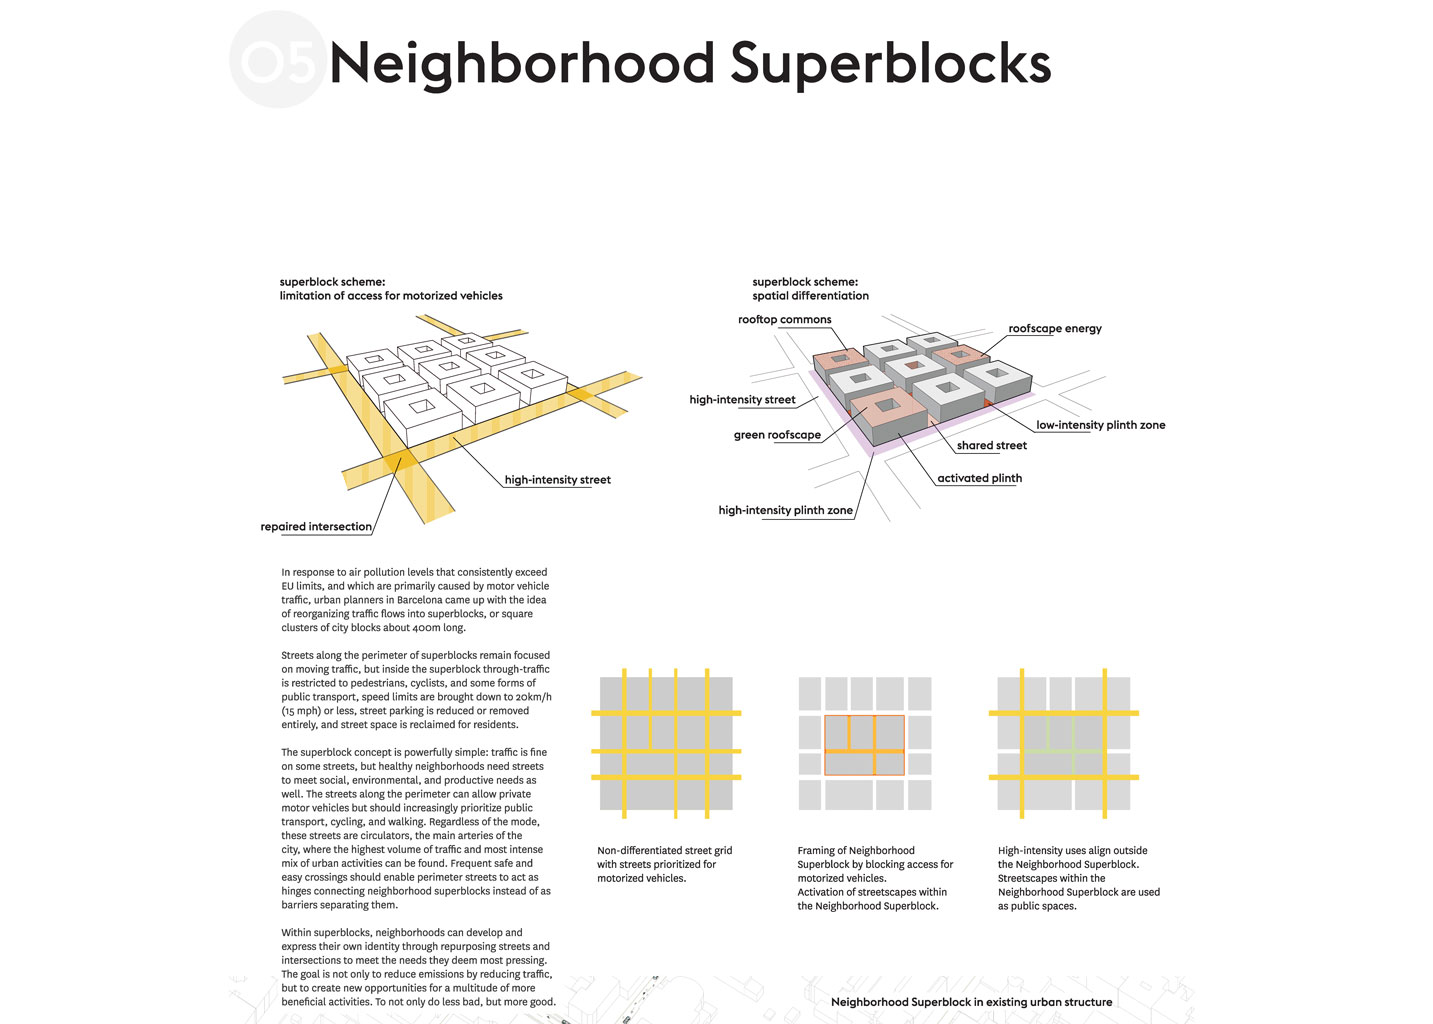 SmarterThanCar_2017_Futurama-redux_PCMT_05_Neighborhood-Superblocks_1